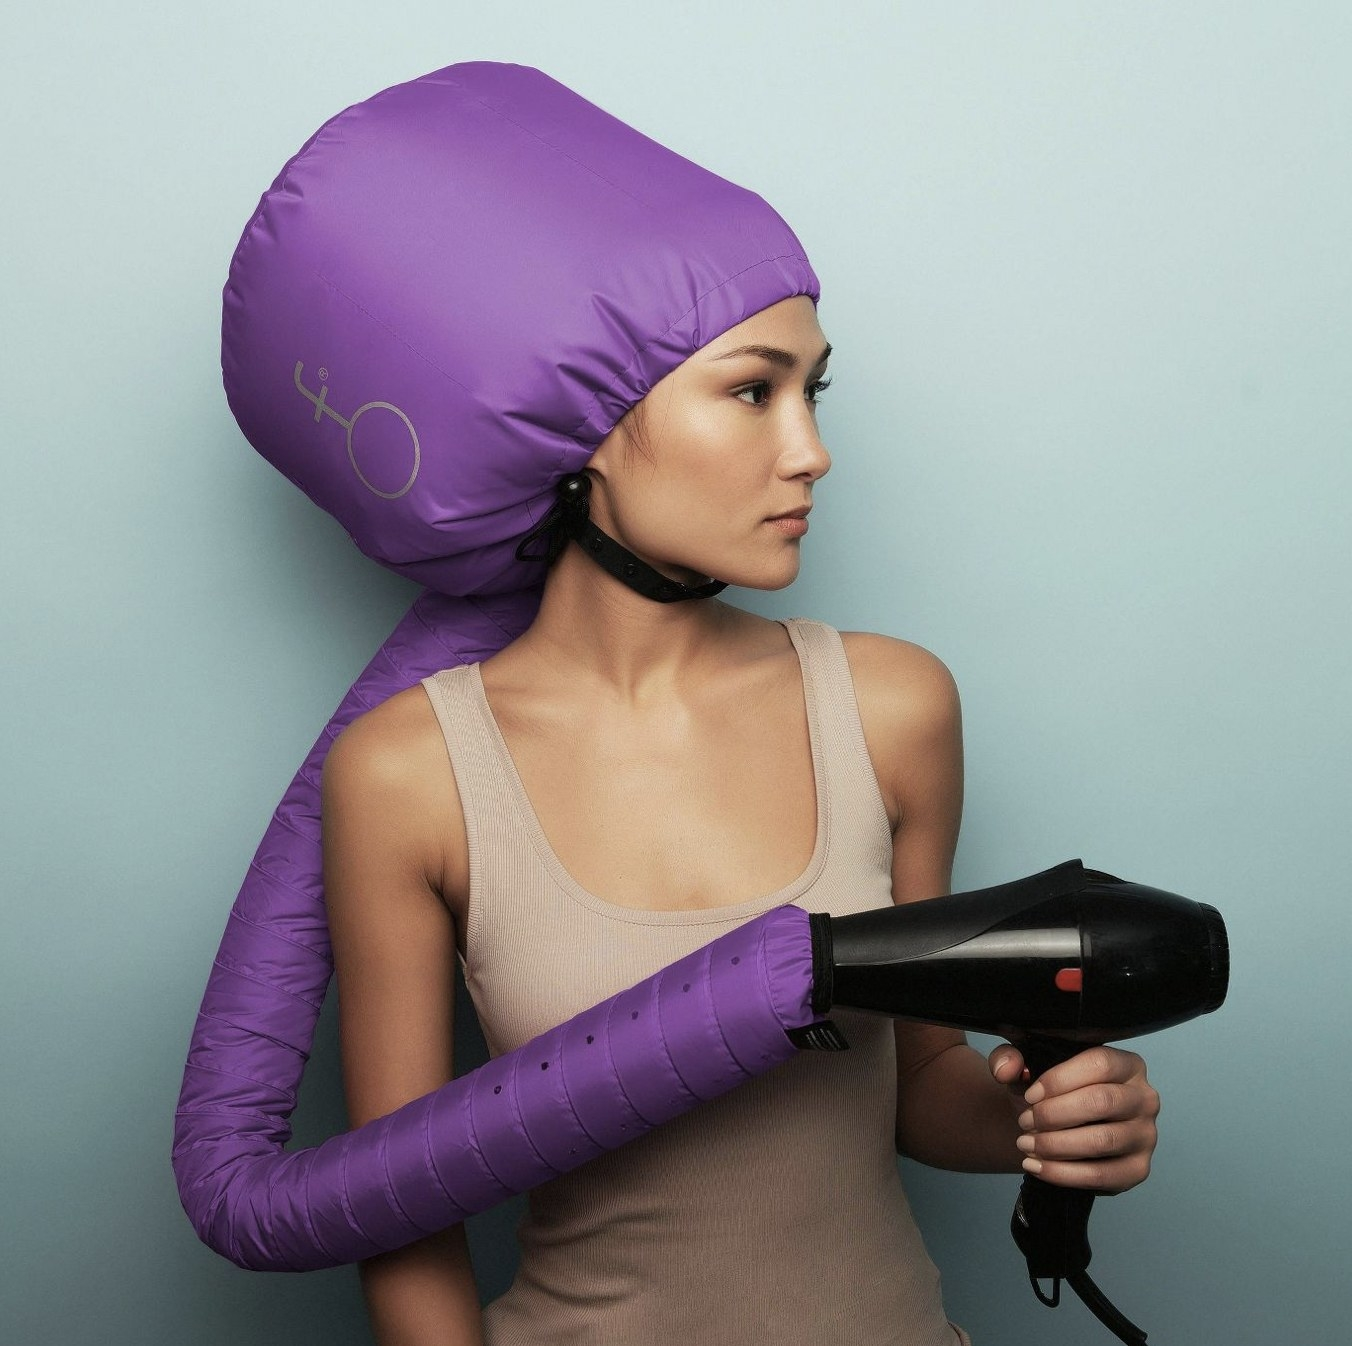 A woman with a purple hooded hair dryer with a blow-dryer attached at the end